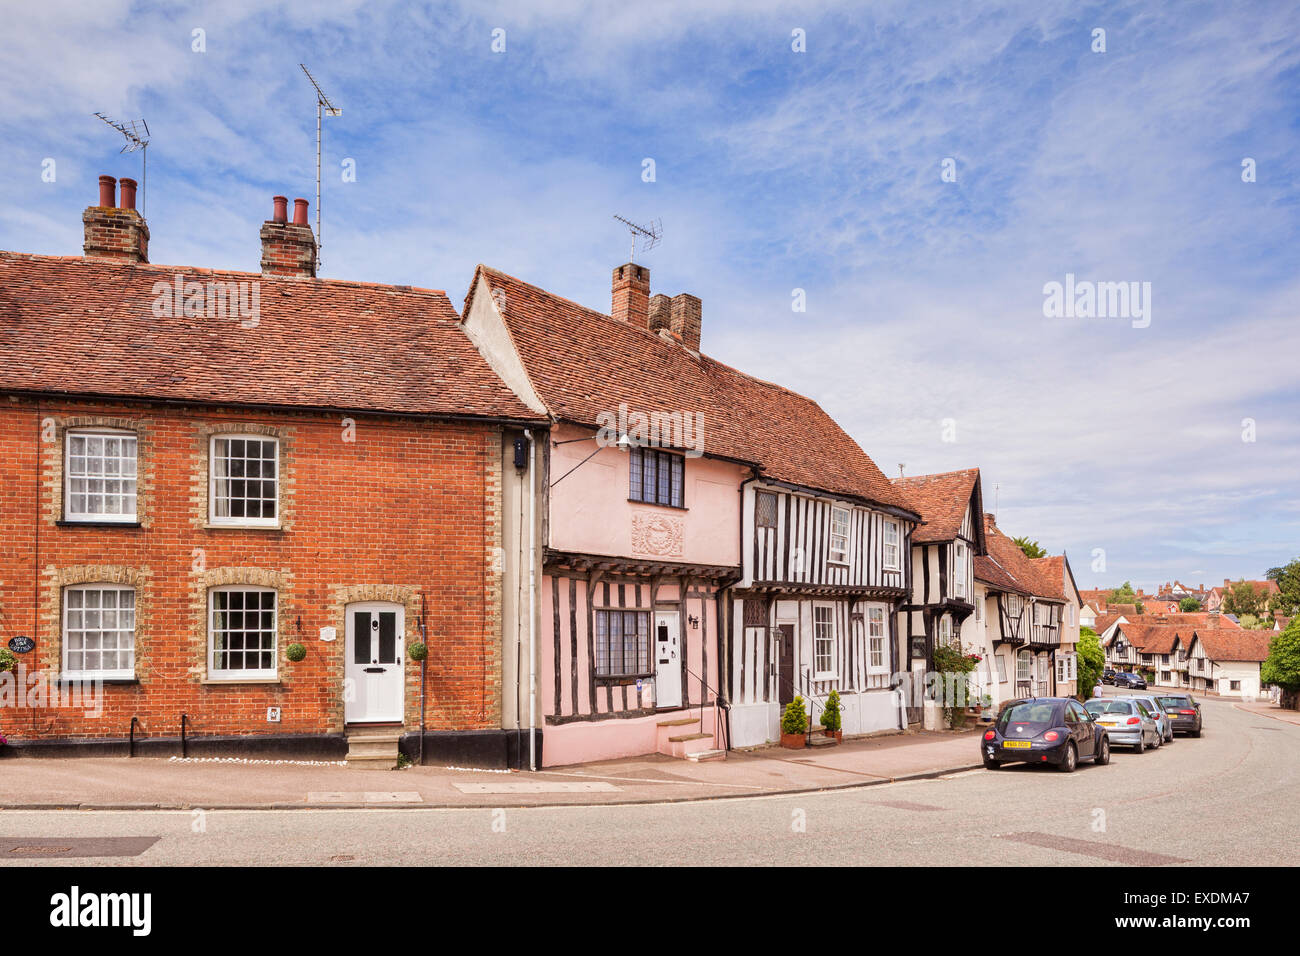 High Street in Lavenham,England's best preserved medieval village, Suffolk, England. - Stock Image